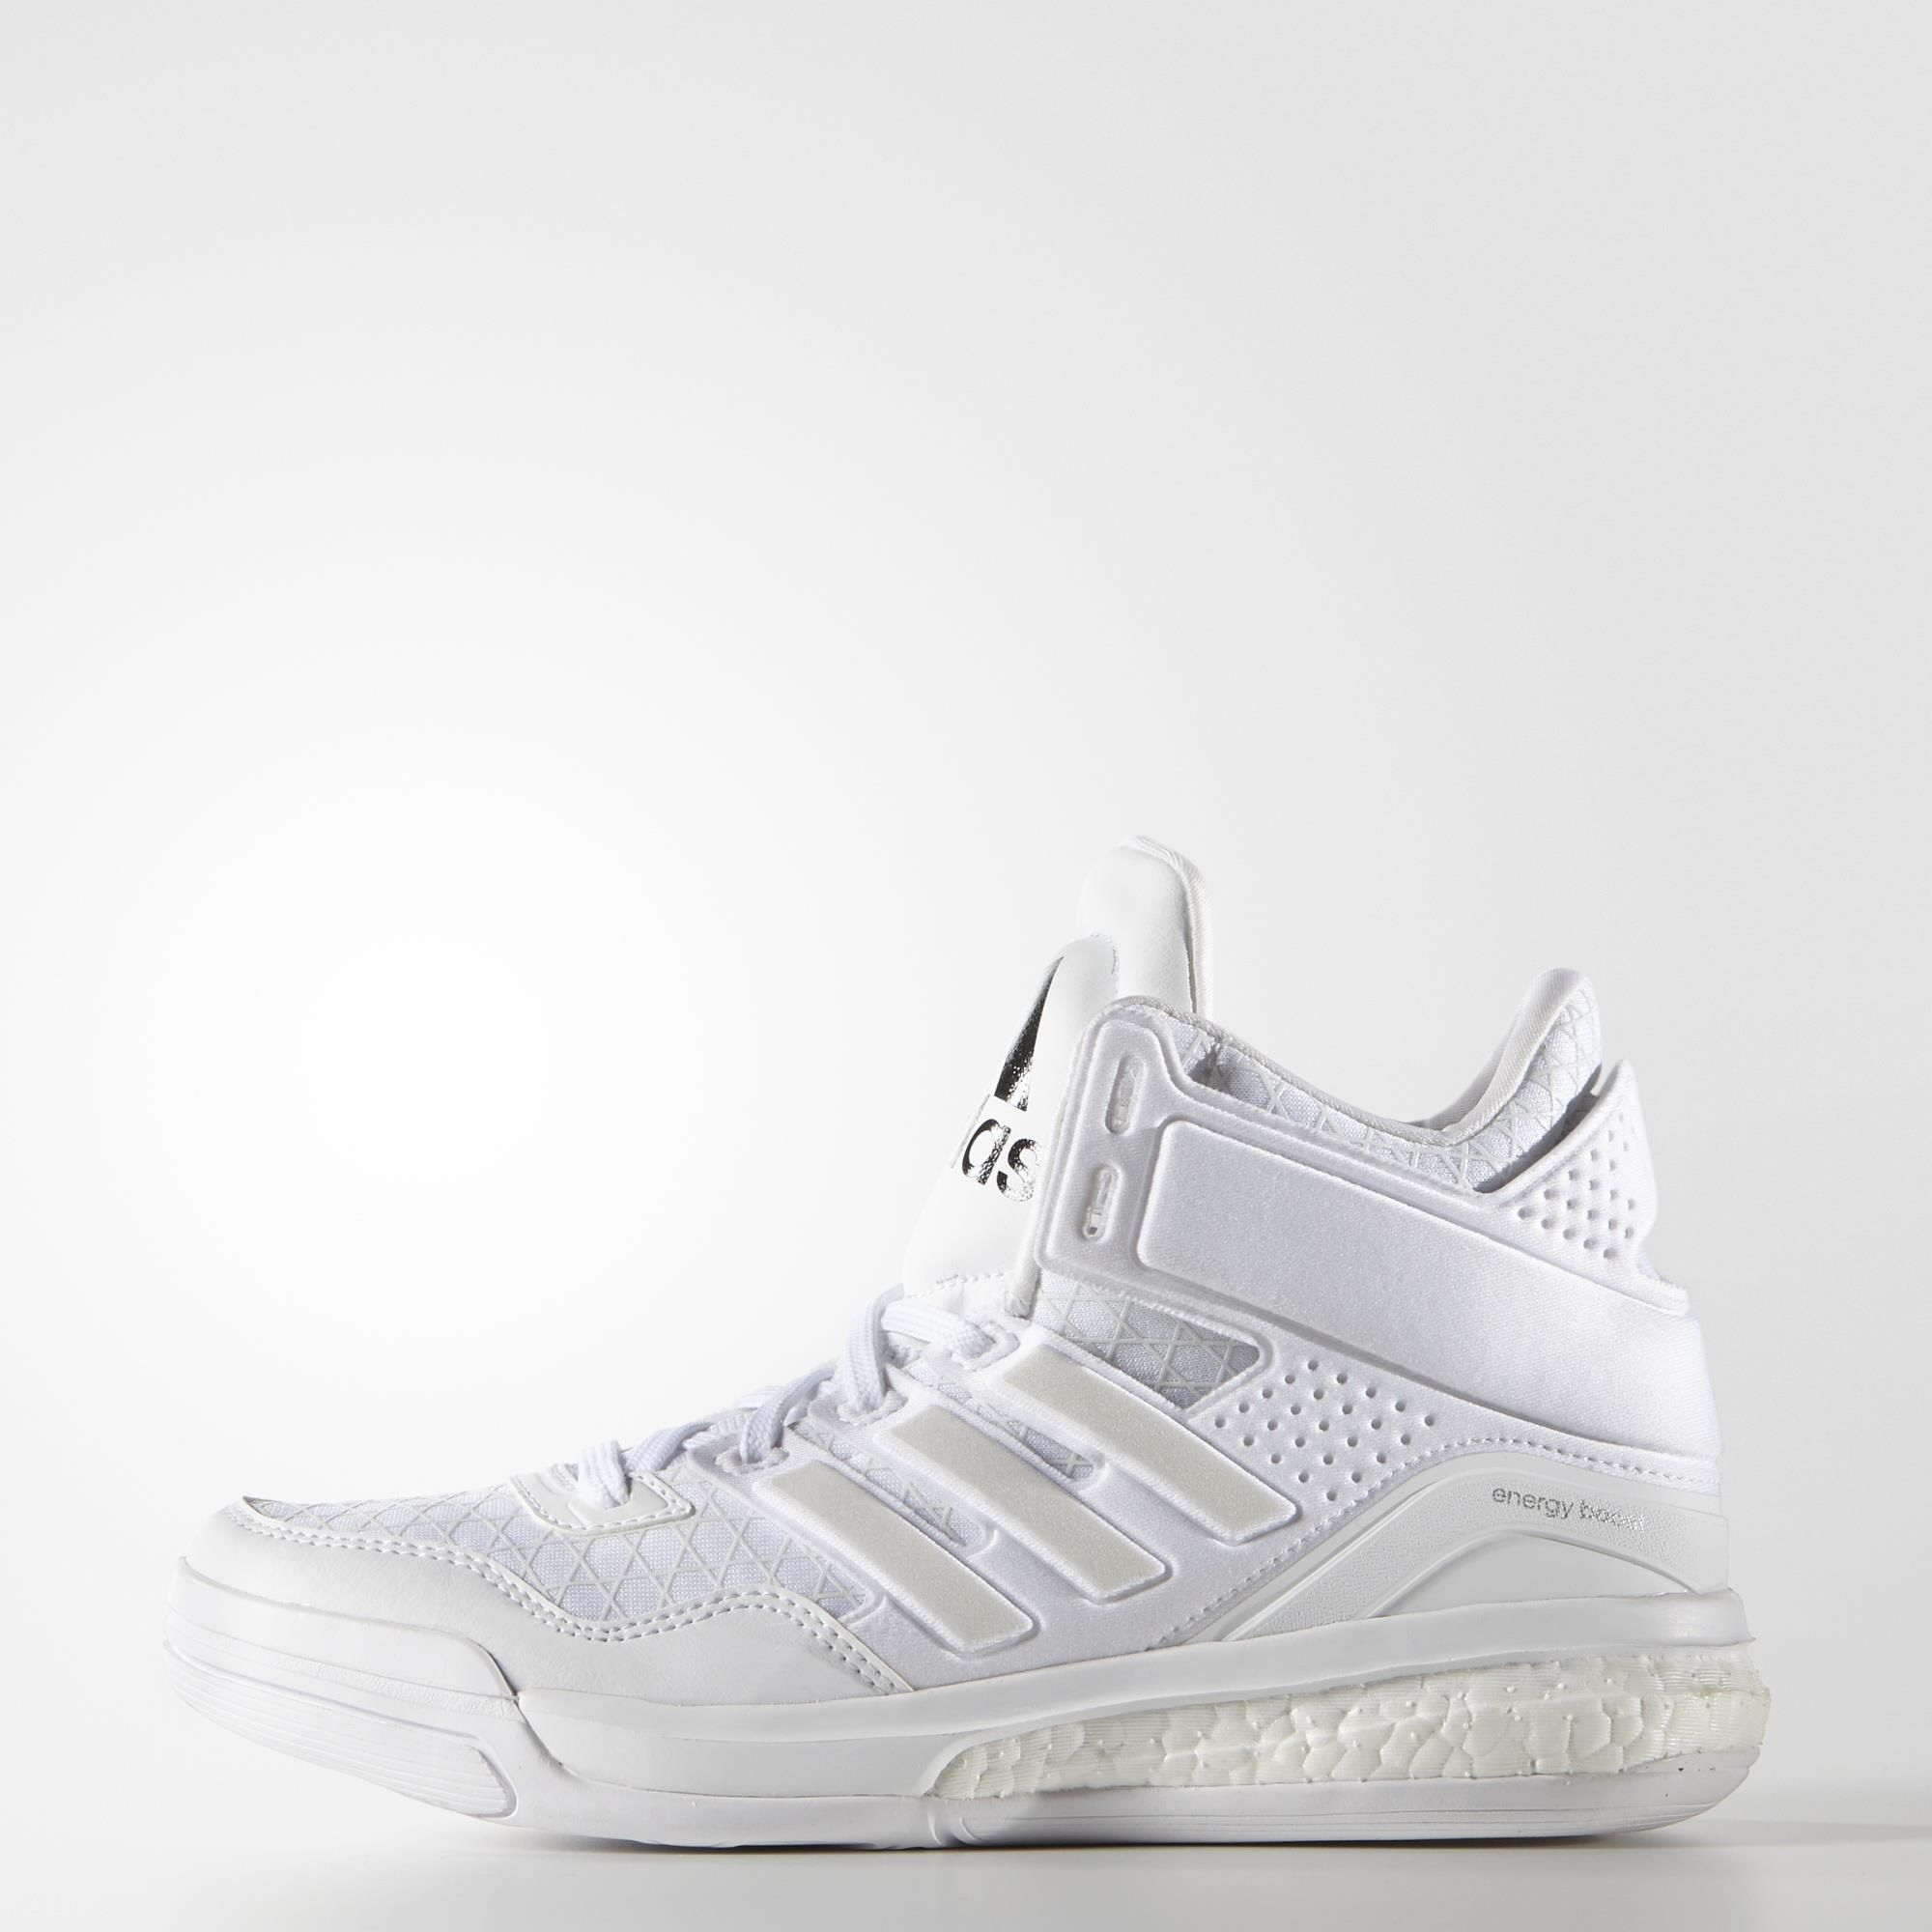 Anti-cold Adidas Forum Mid Men Women adidas Originals Shoes Clothing Gear adidas Originals Adidas forum shoes Men's Shoes Compare Prices Adidas Originals Crazy Light